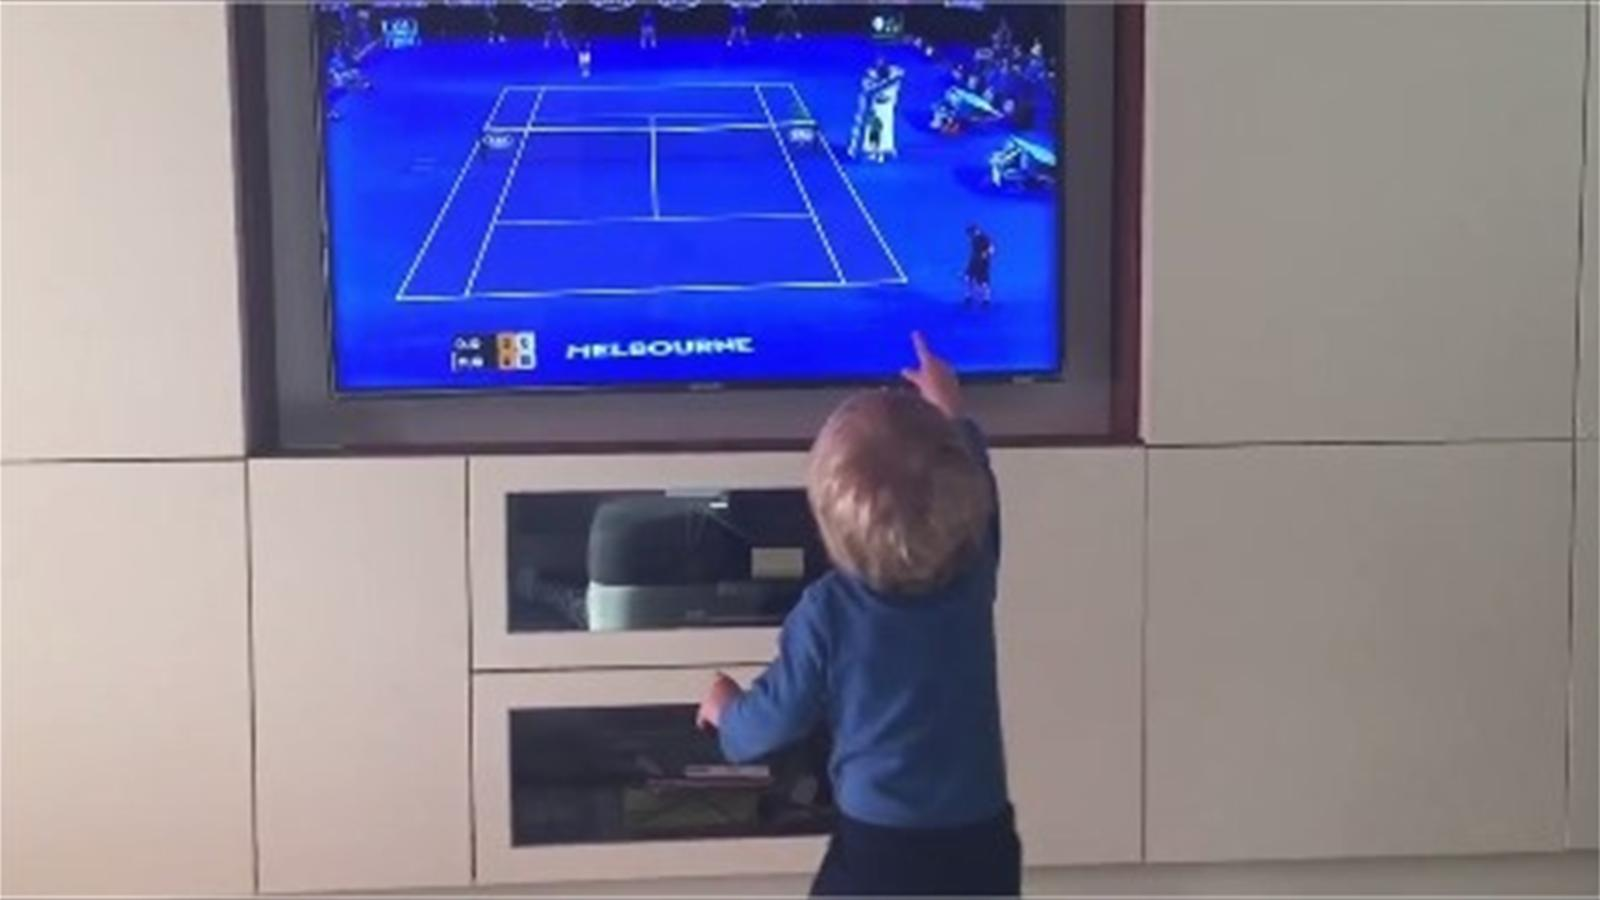 Novak Djokovic's son Stefan in front of TV (Twitter)